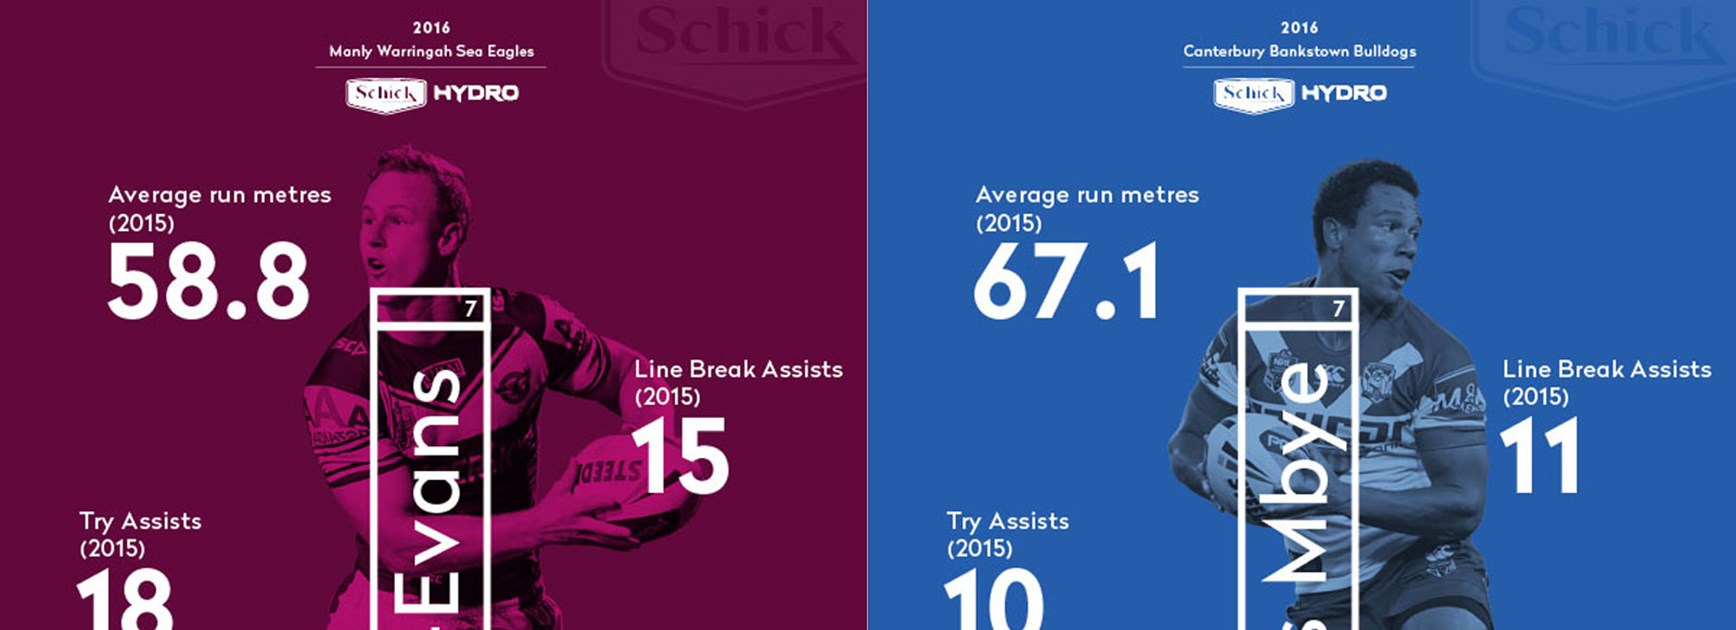 Manly halfback Daly Cherry-Evans and Bulldogs playmaker Moses Mbye both loom as key figures for their teams in 2016.